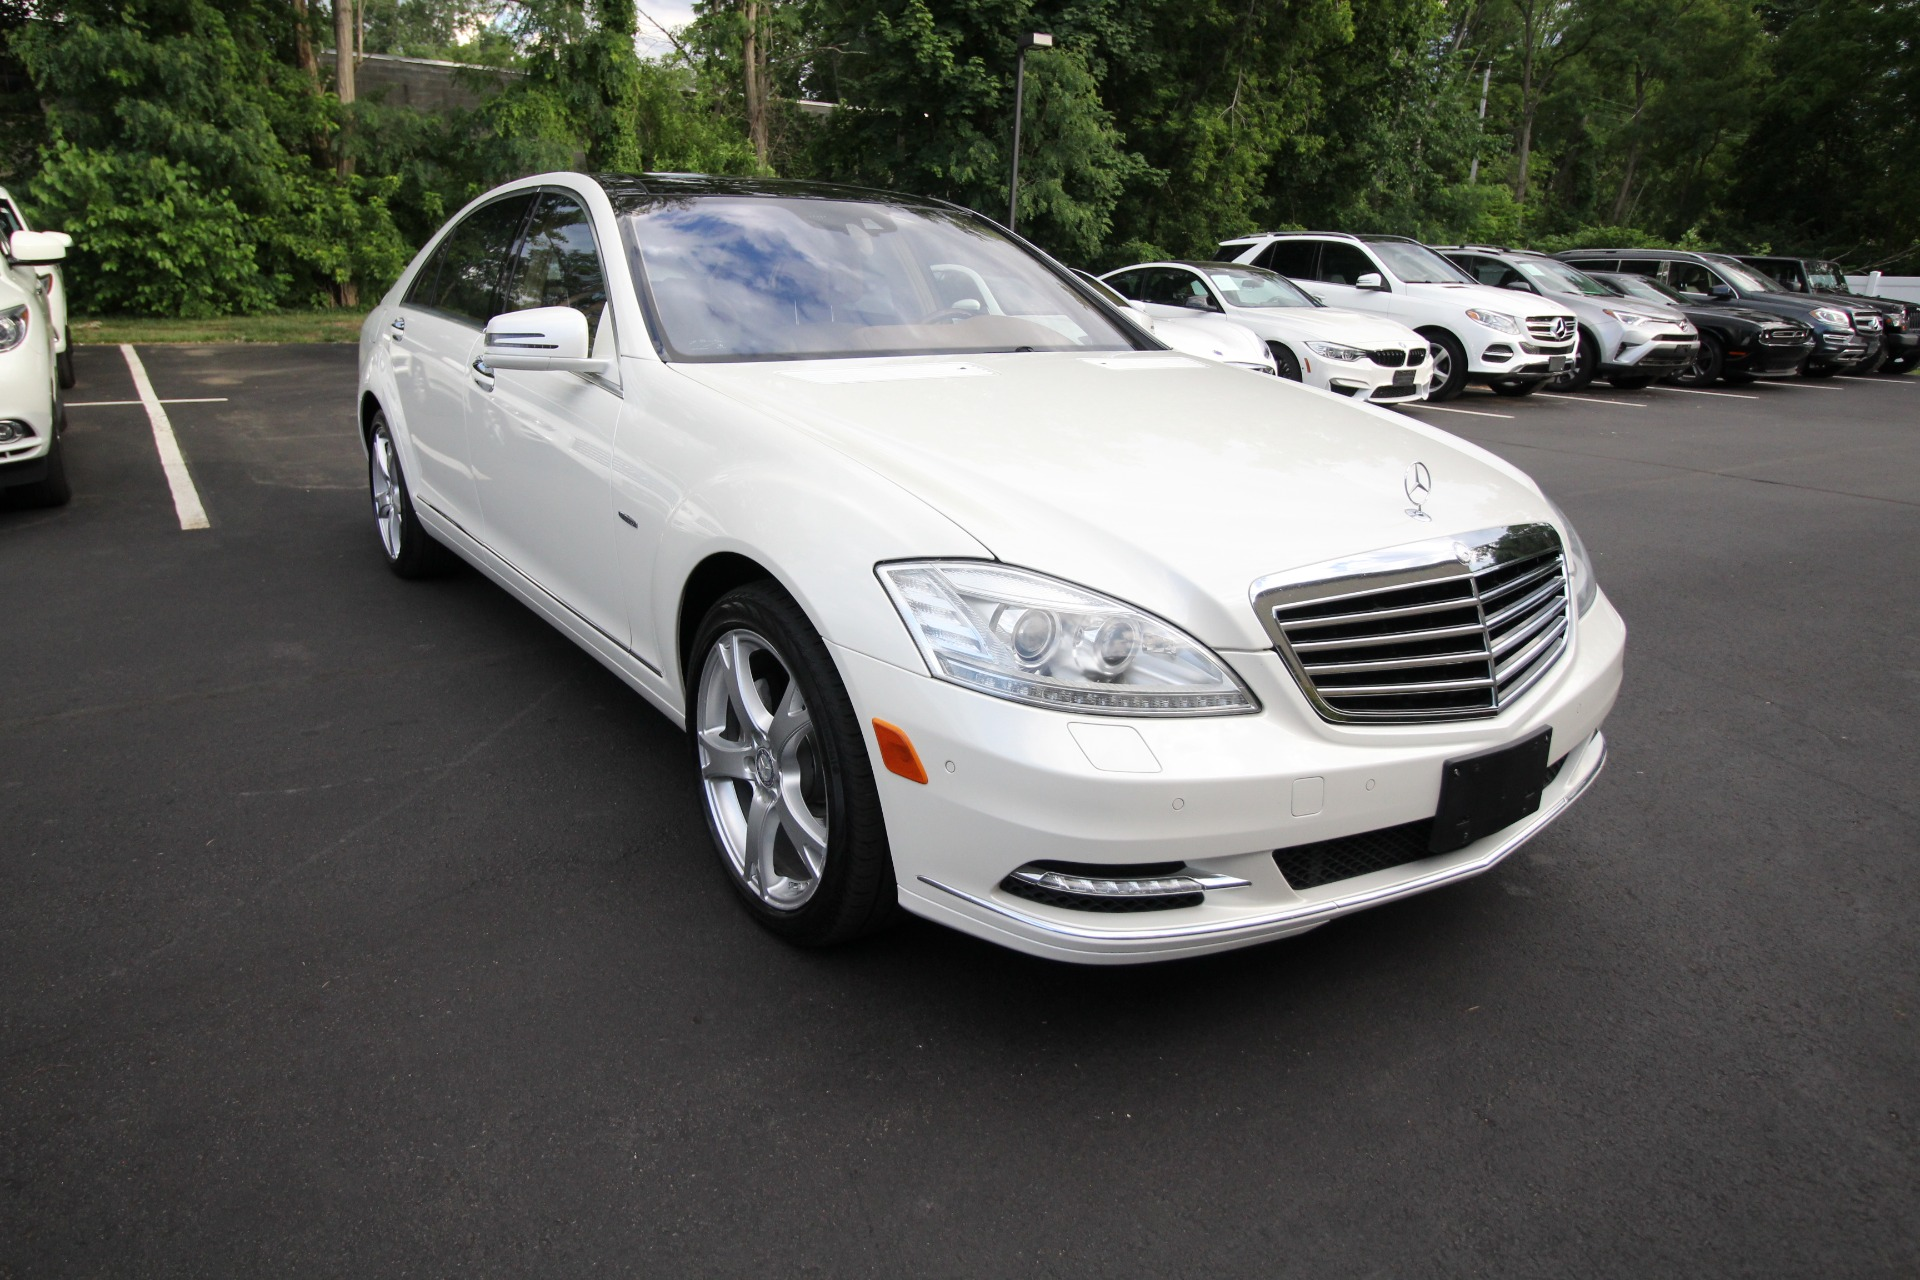 Used 2012 Mercedes-Benz S-Class S550 4-MATIC DIAMOND WHITE SUPER NICE LOW MILES   Albany, NY